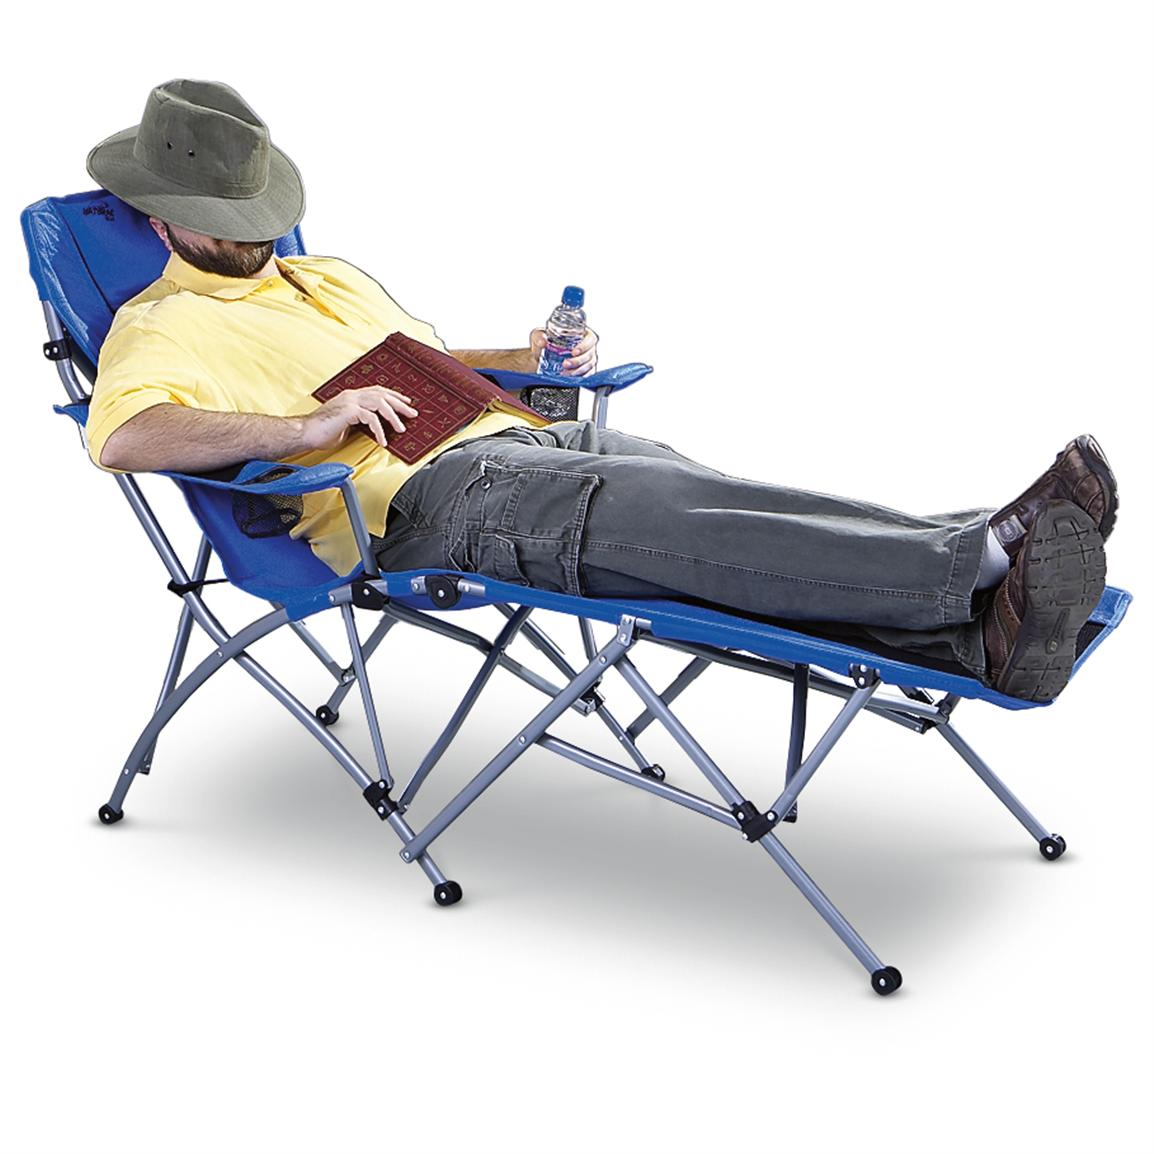 Folding Lounge Chair Chairs at Sportsman s Guide